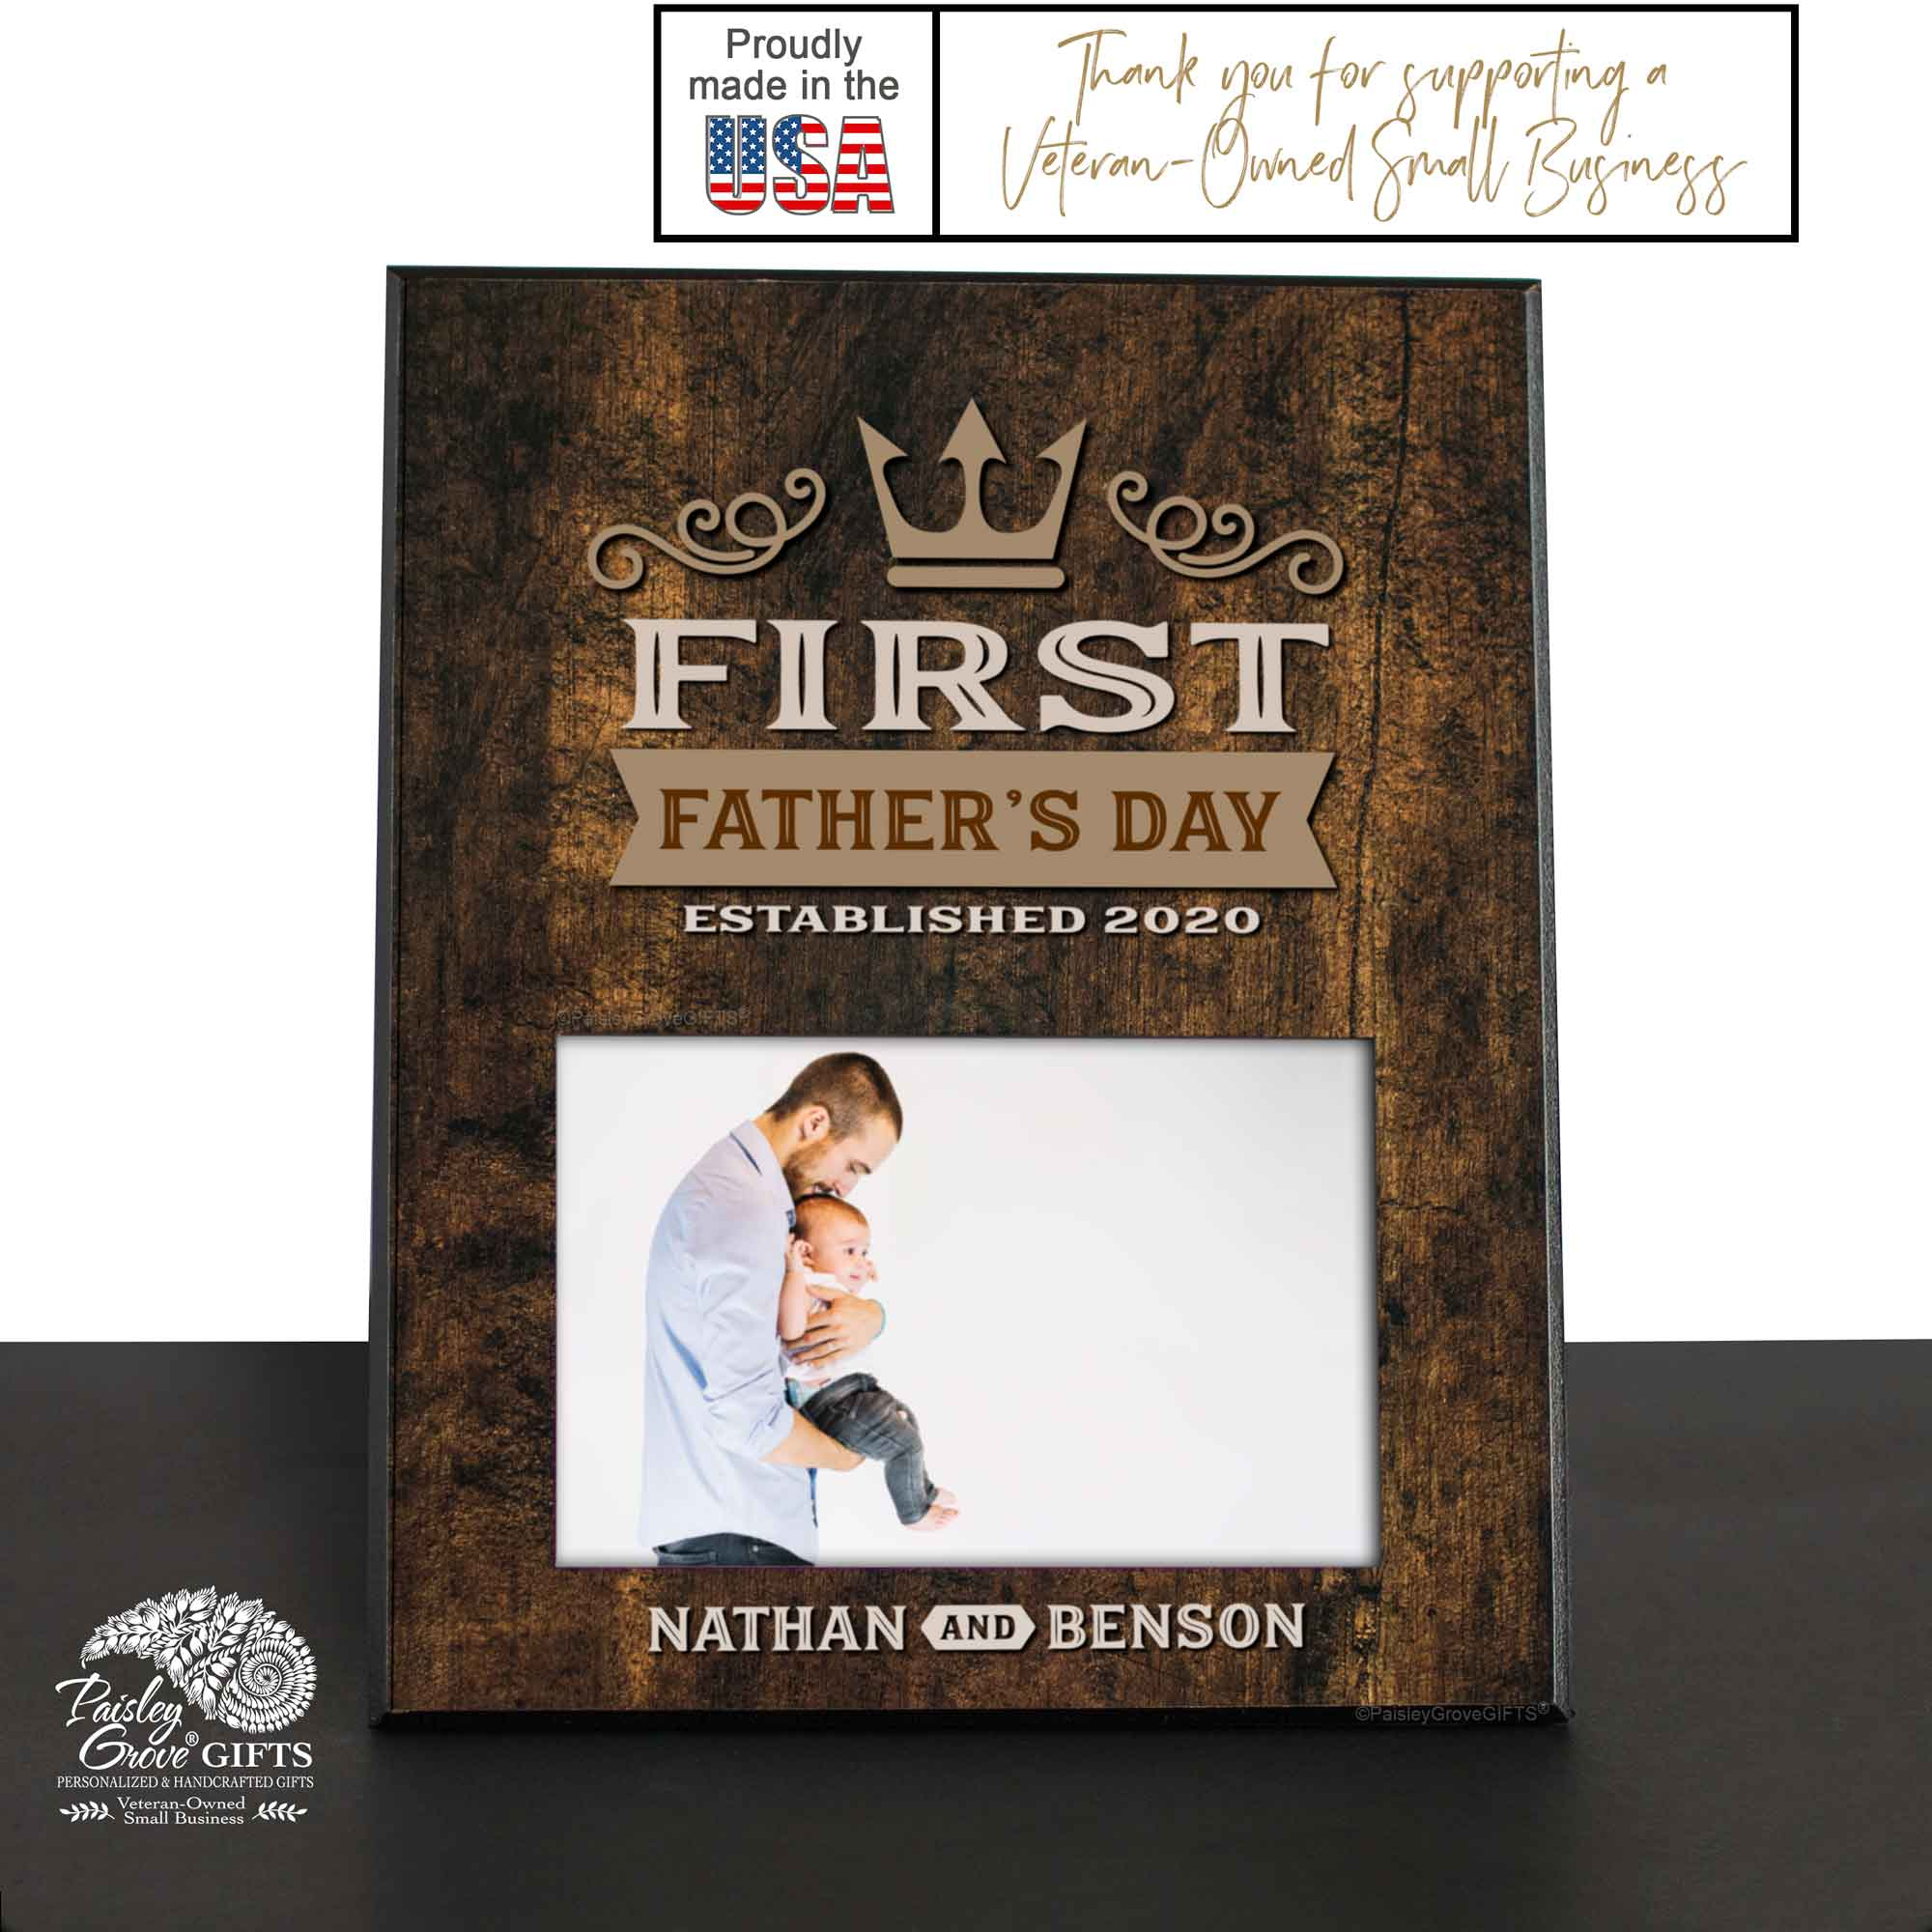 CopyrightPaisleyGroveGIFTS S215b Personalized New Dad First Father's Day Frame is Made In USA